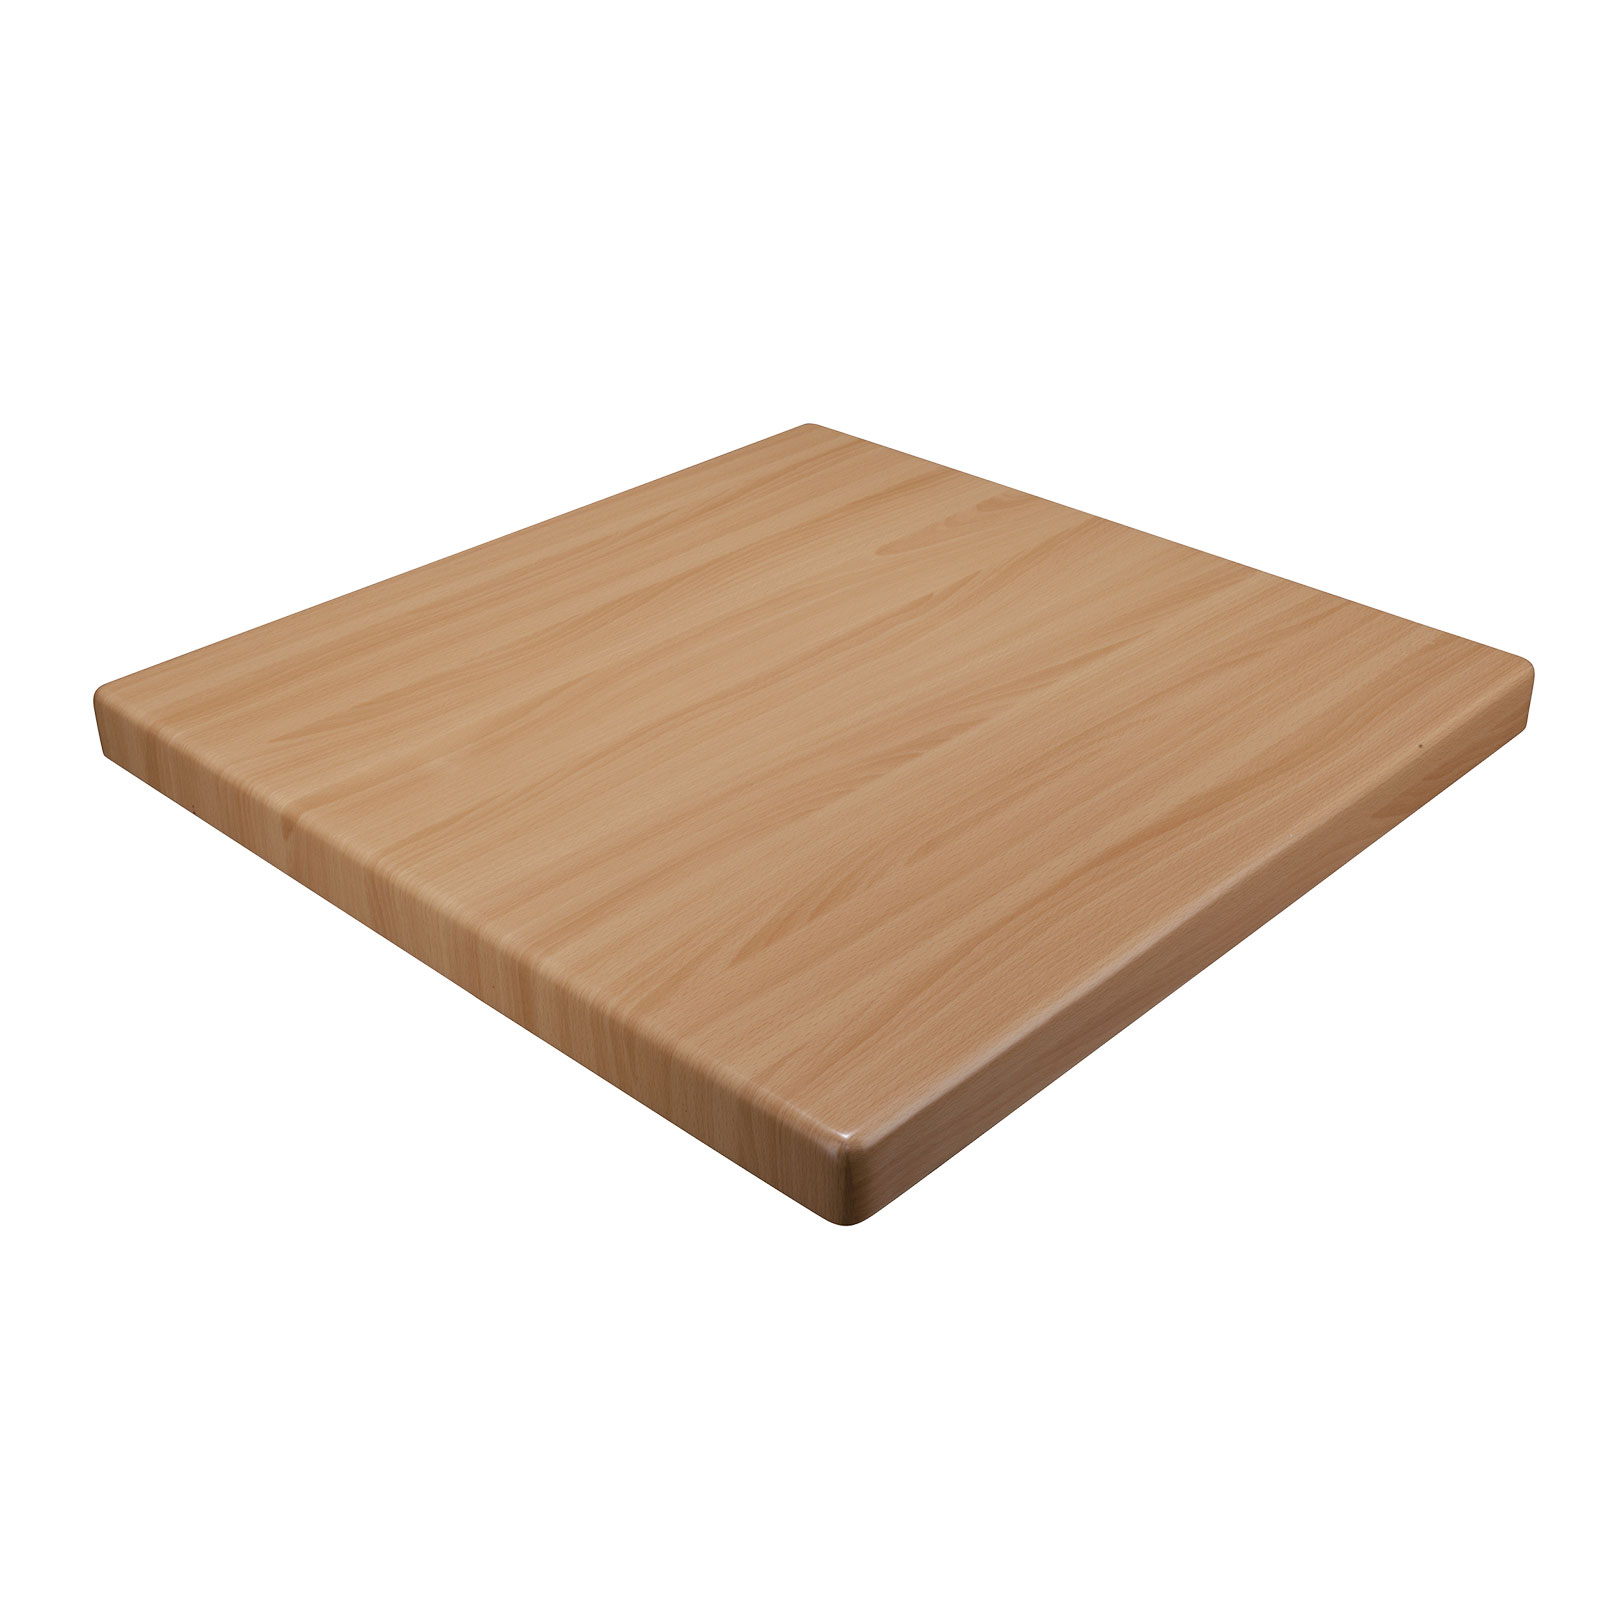 G & A Commercial Seating RTUV3048 table top, coated